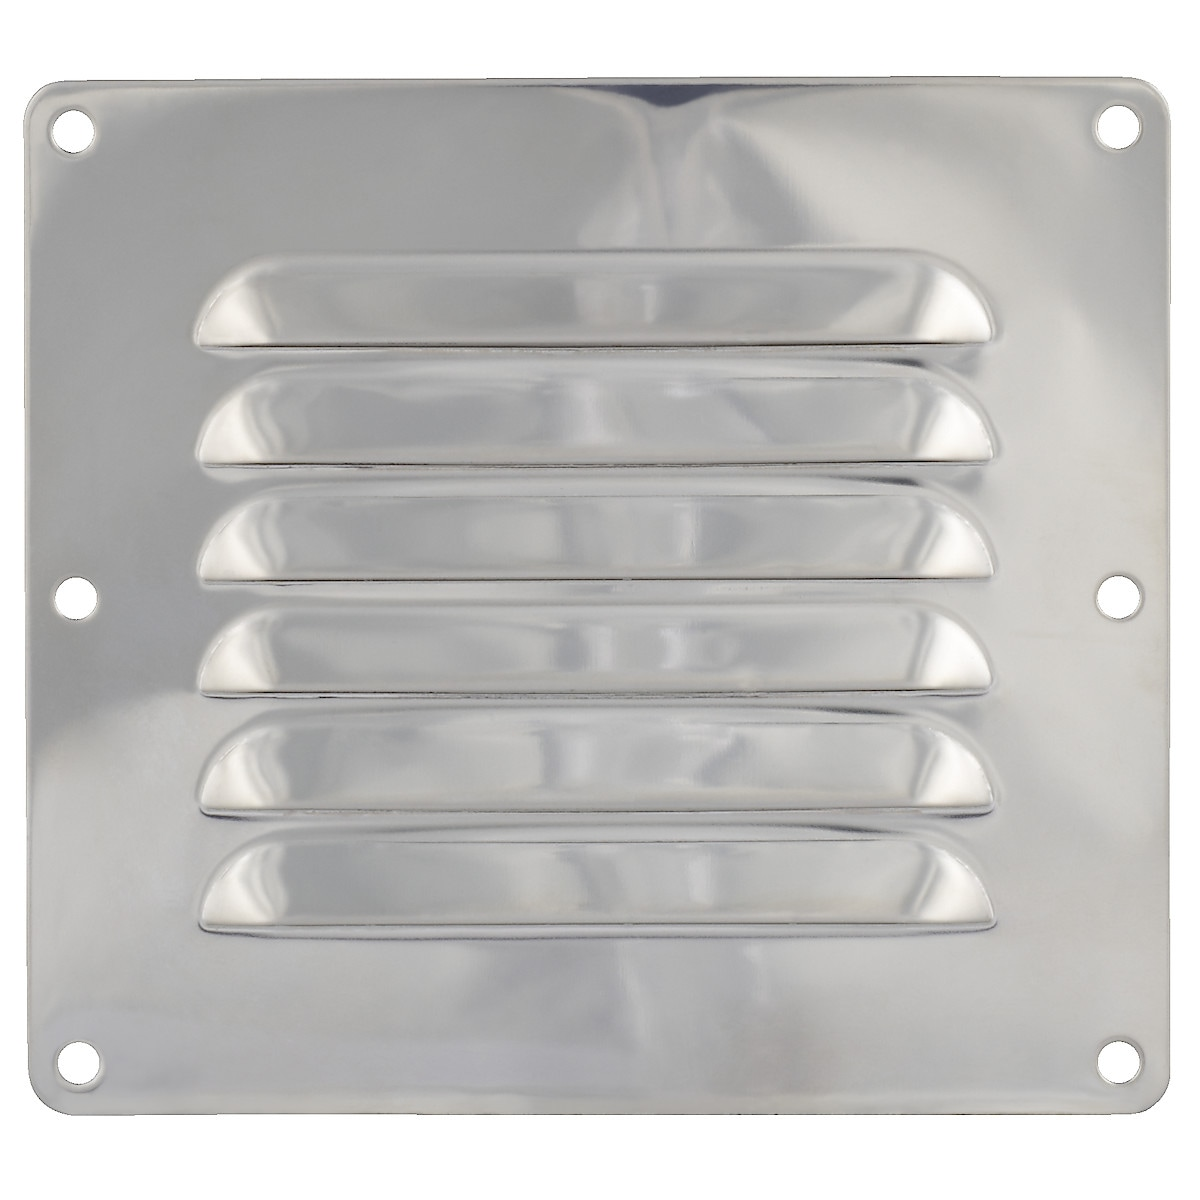 Vent Grille